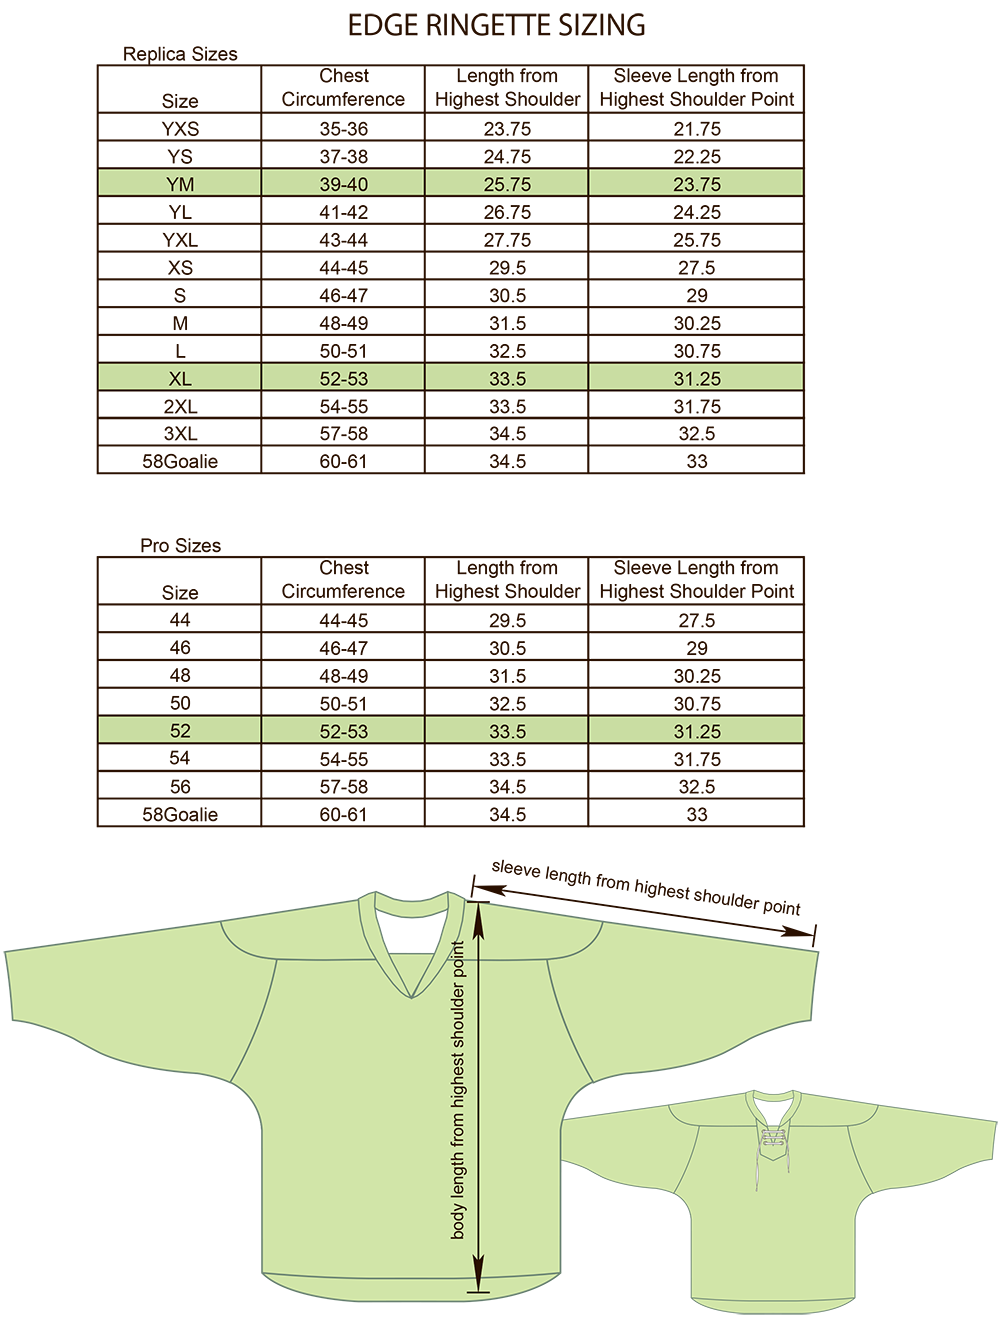 Edge Style Ringette Regular and Pro Size Chart Image